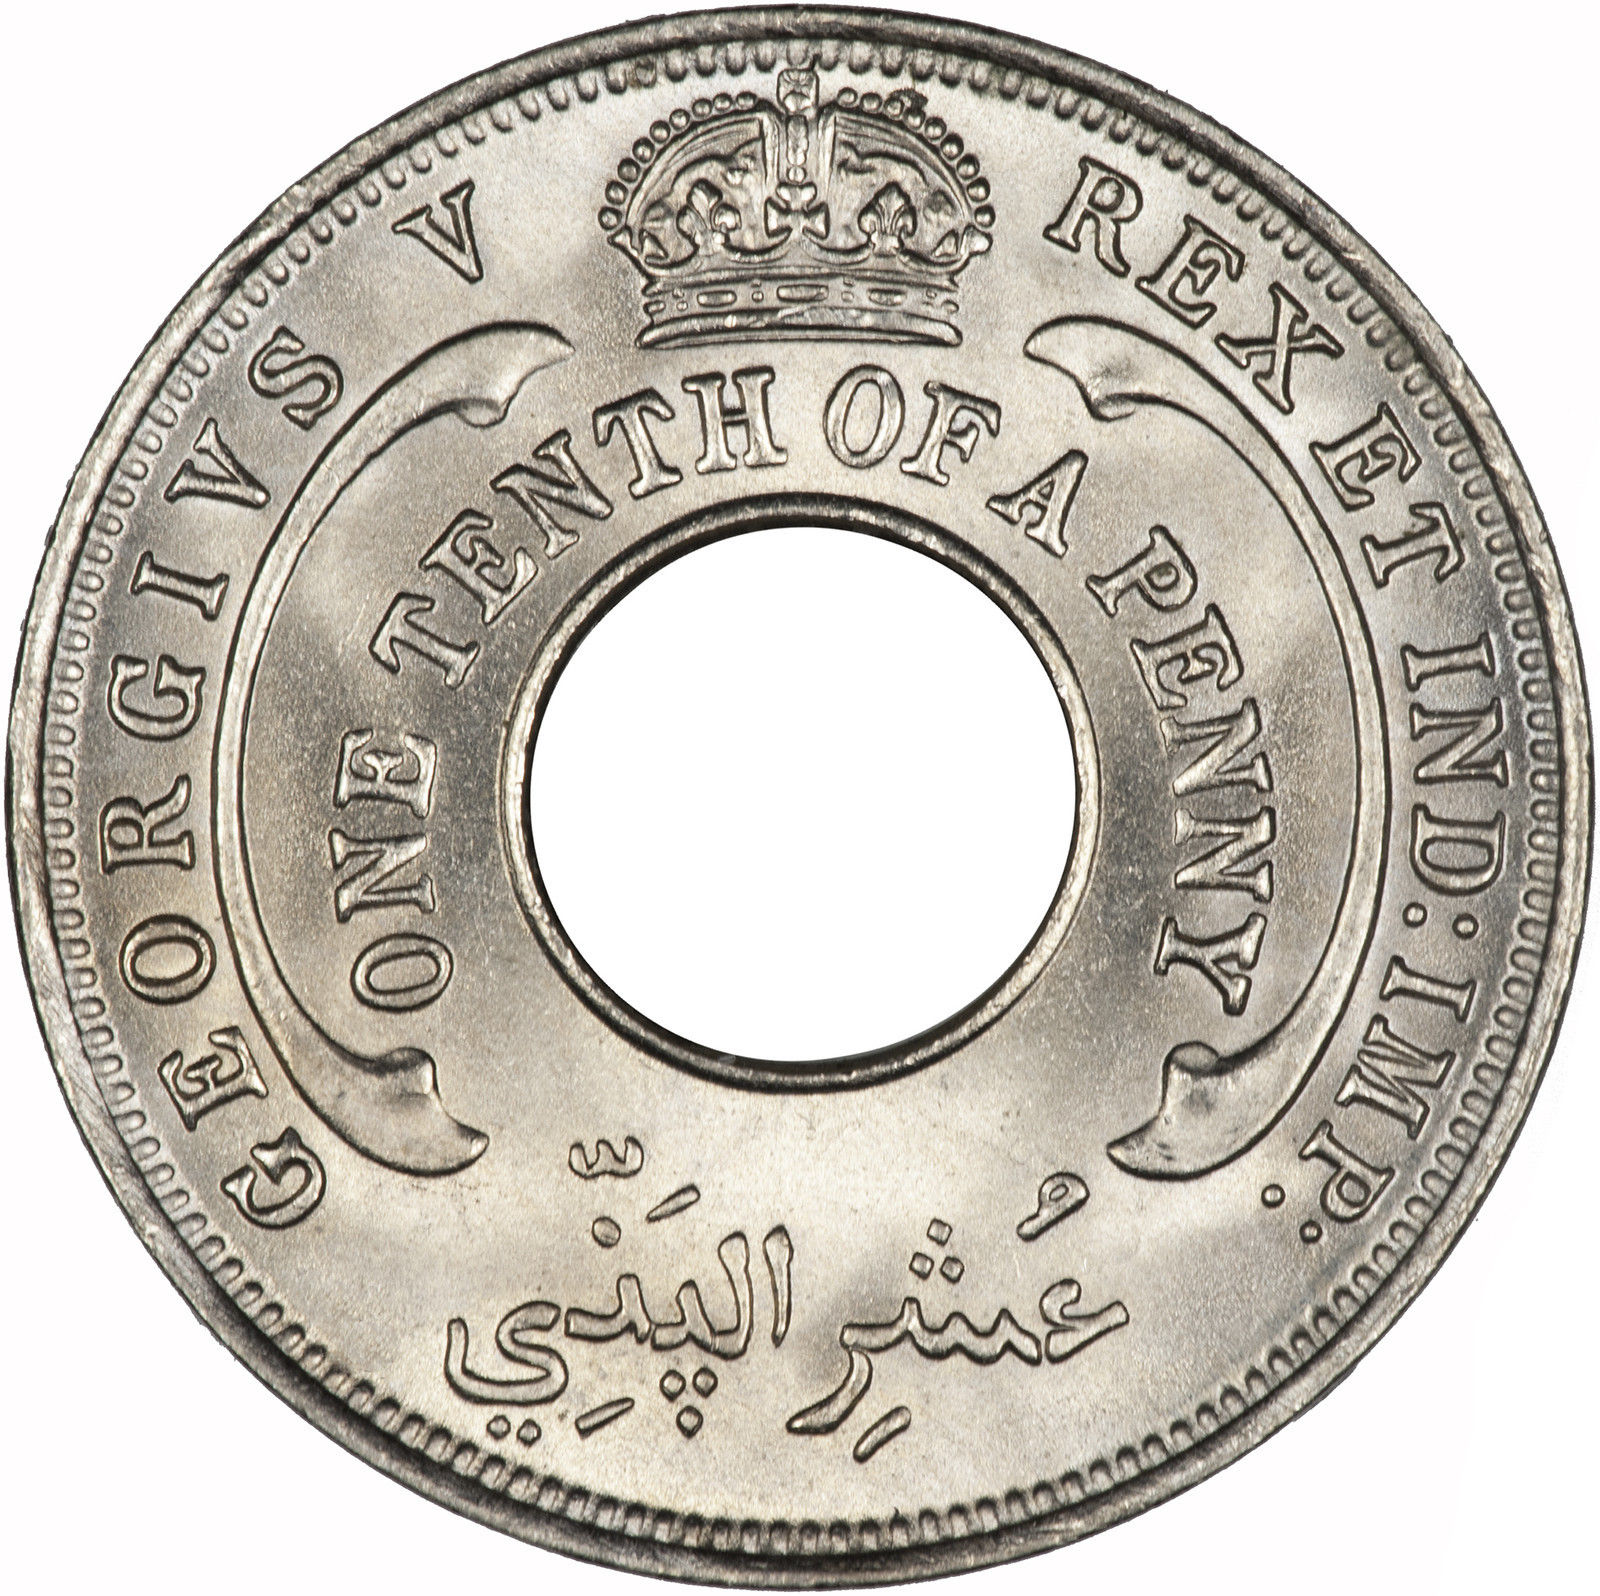 One-tenth Penny (CuproNickel, George V): Photo British West Africa 1/10 Penny 1933